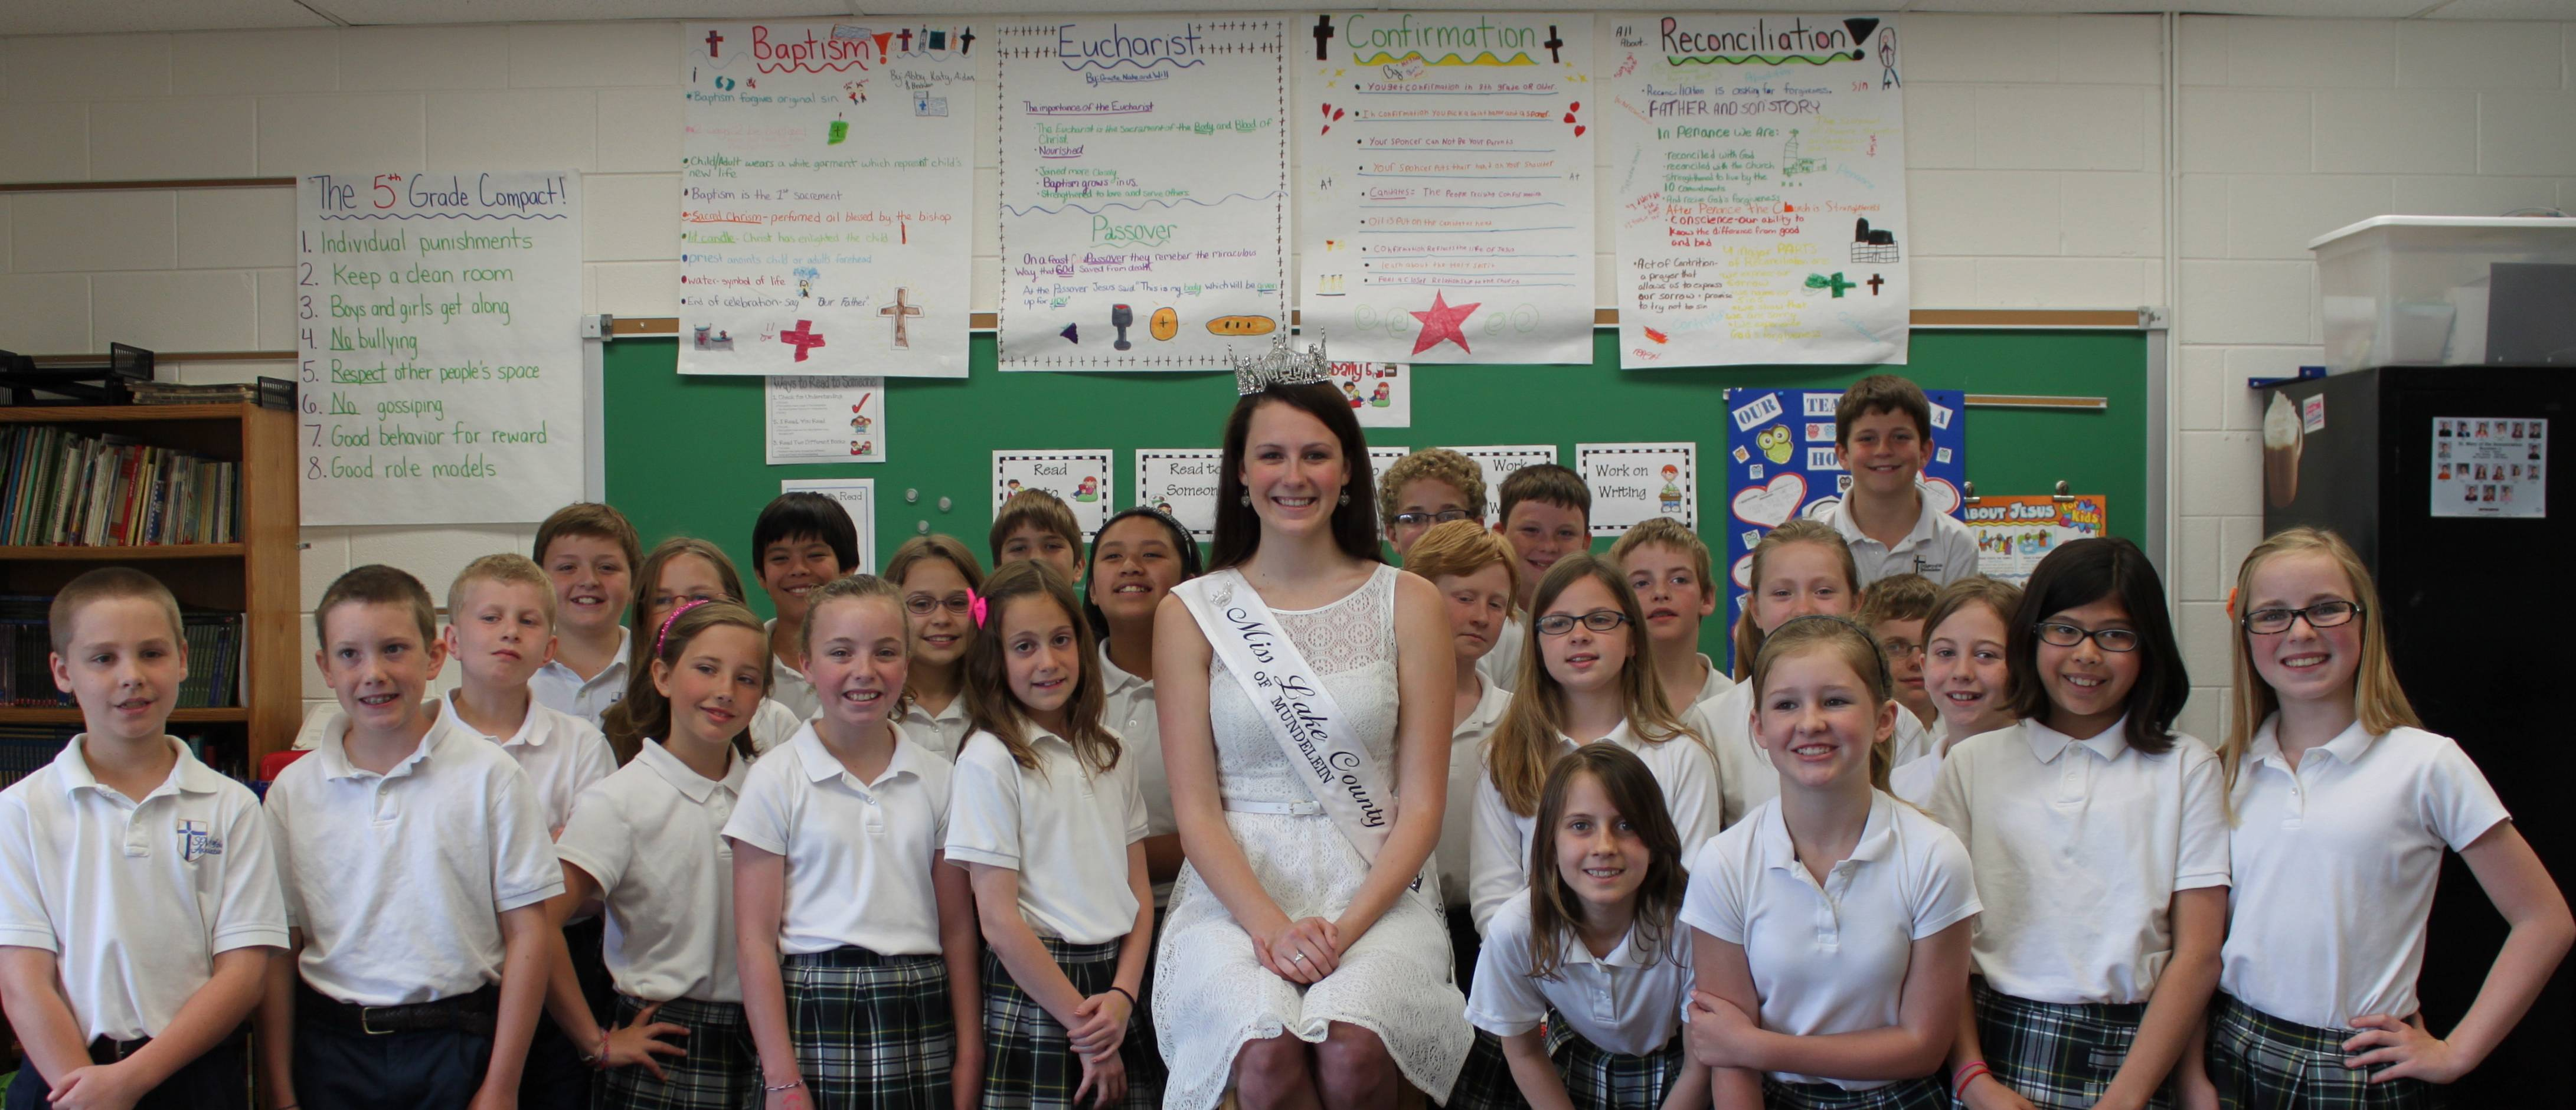 Miss Lake County, Shannon Baucus, surrounded by fourth and fifth grade students at St. Mary of the Annunciation School.